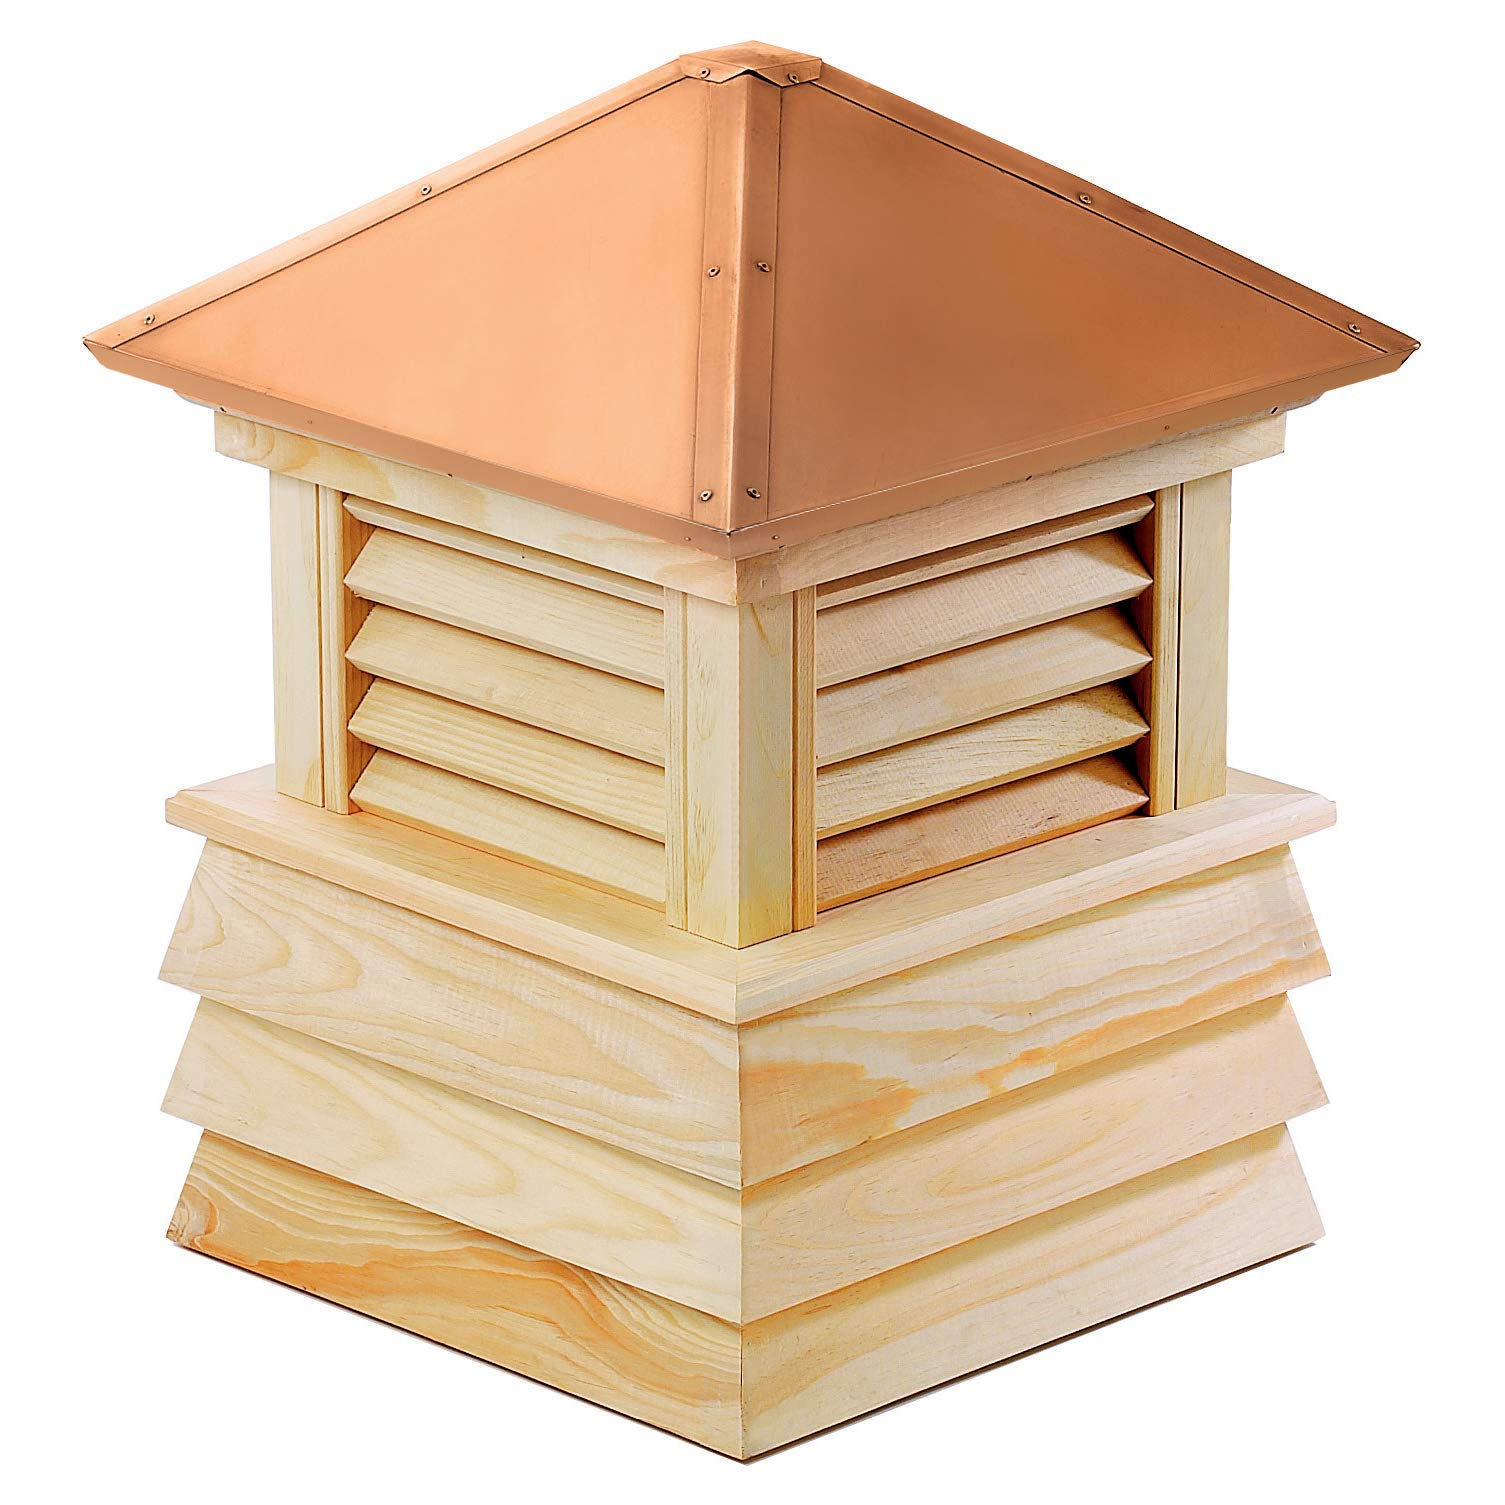 Good Directions Dover Wood Shiplap Cupola with Copper Roof 26'' x 35''